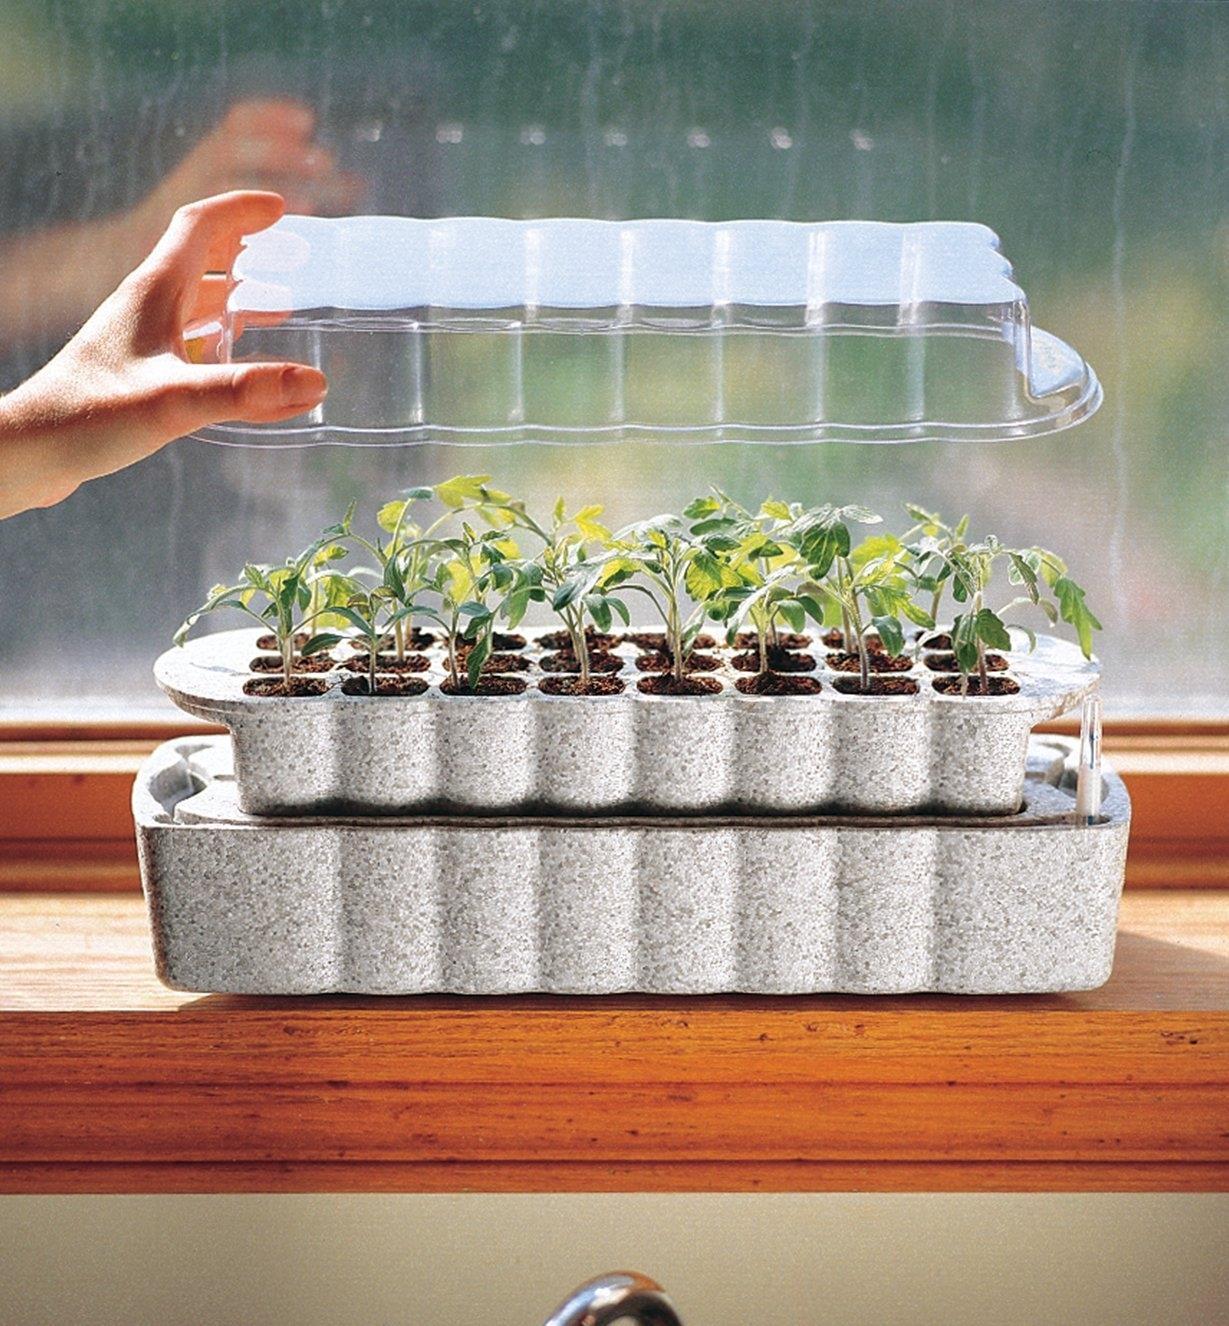 Windowsill Seed Starter with cover removed, showing seedlings inside